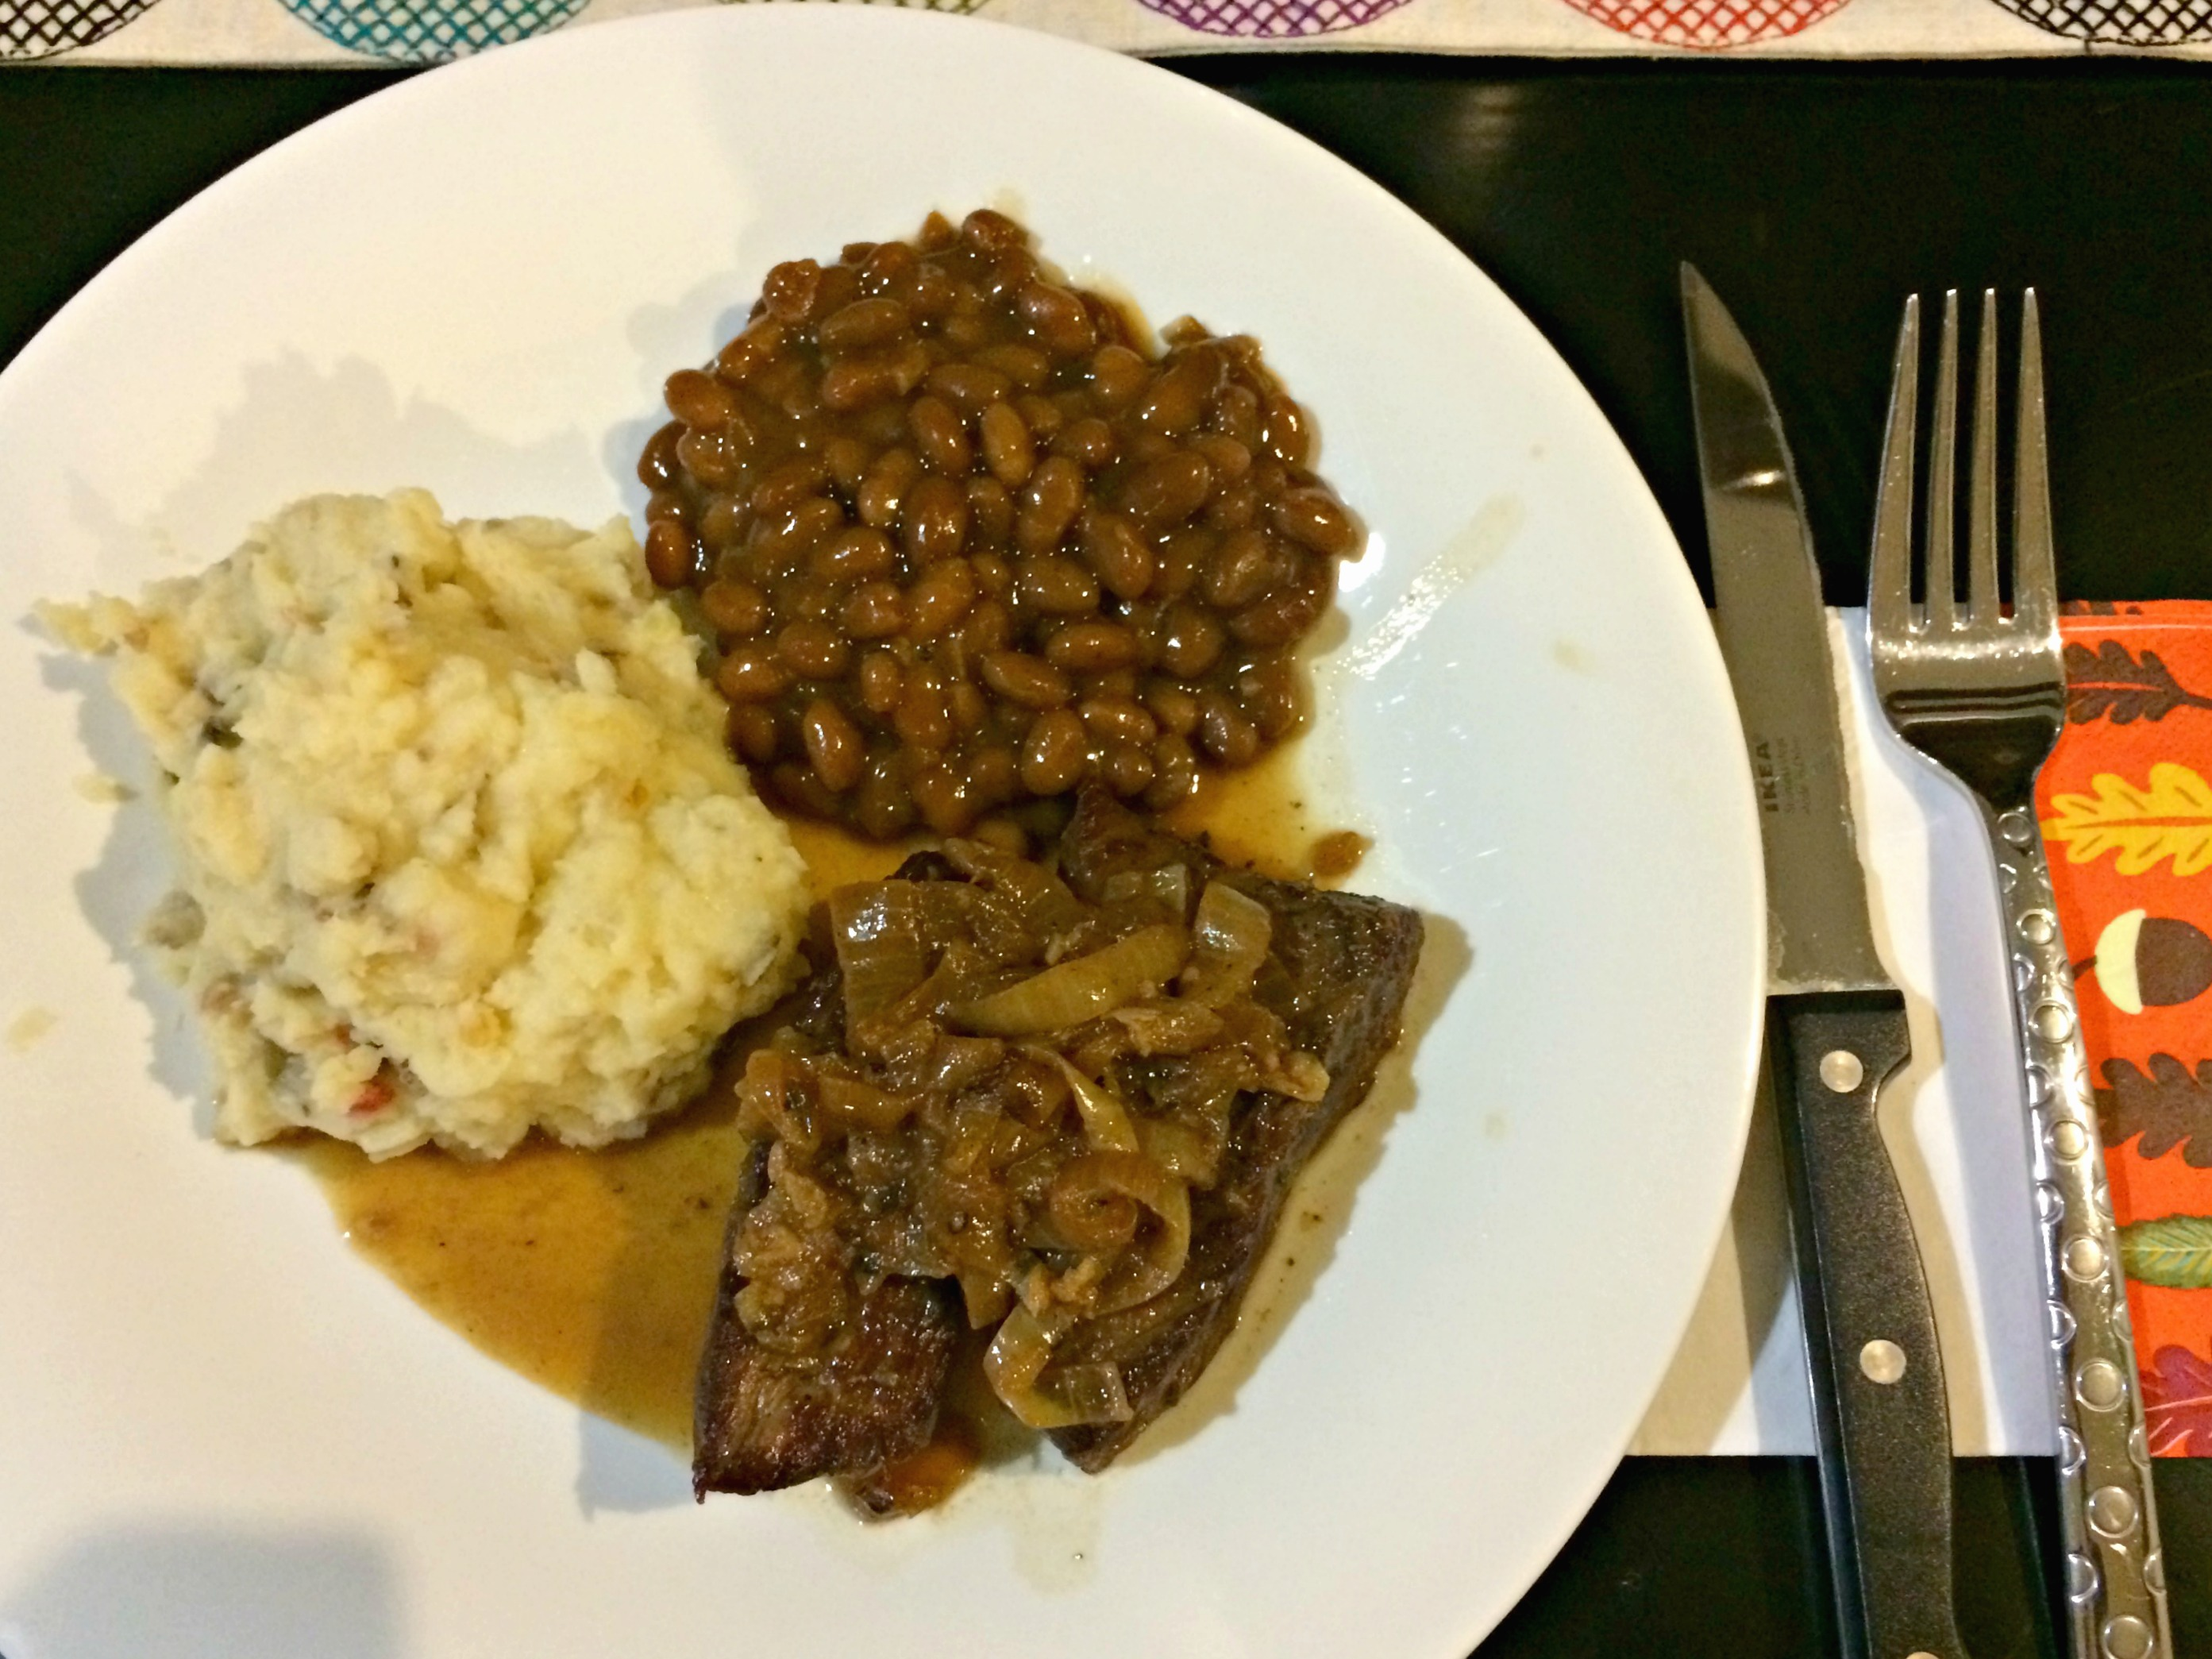 short rib with mashed potatoes and beans